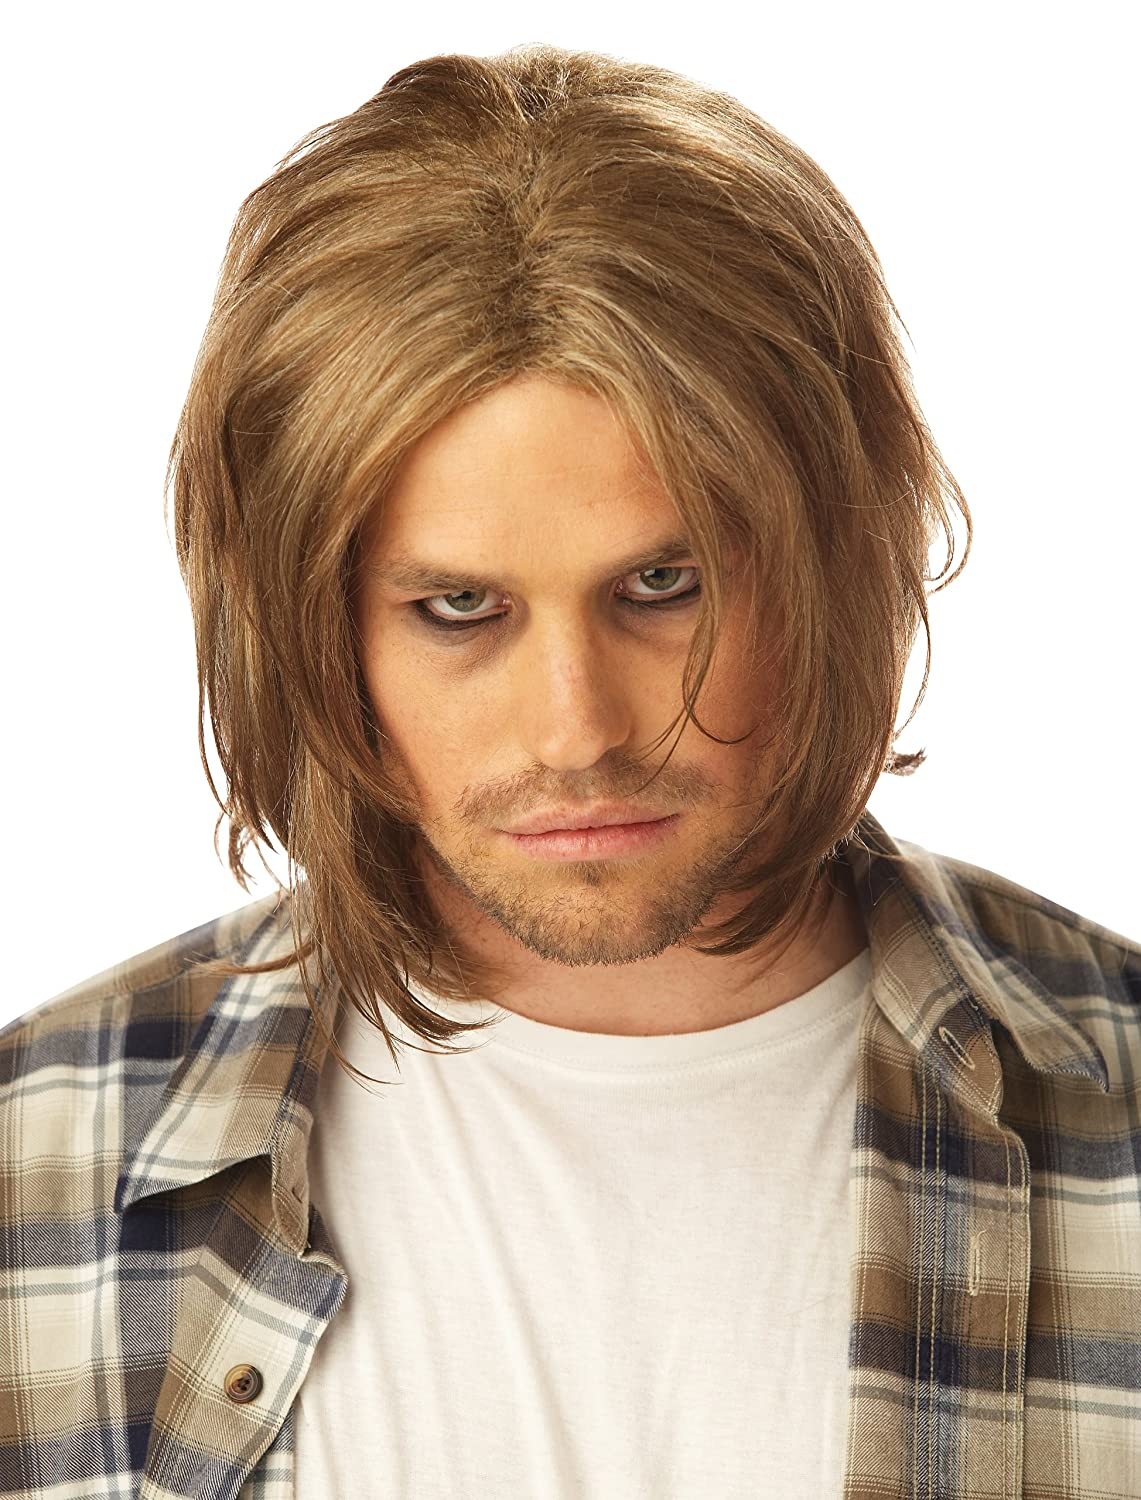 Amazon.com: California Costumes Men\'s Grunge Wig, Dirty Blonde,One ...